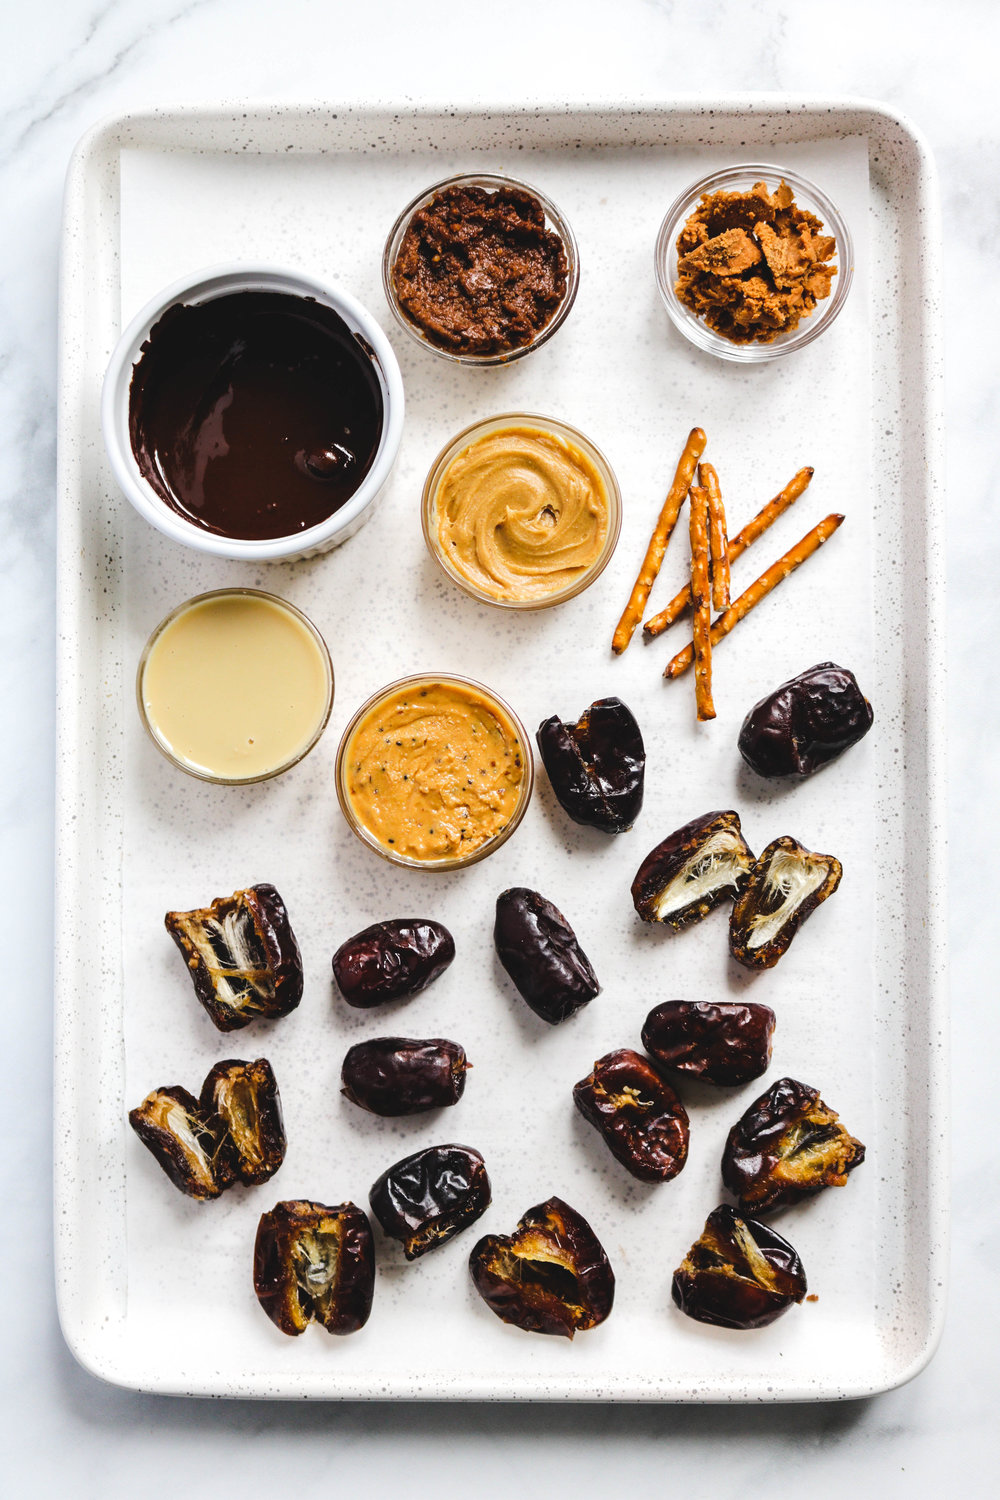 Chcolate Covered Stuffed Dates-1.jpg